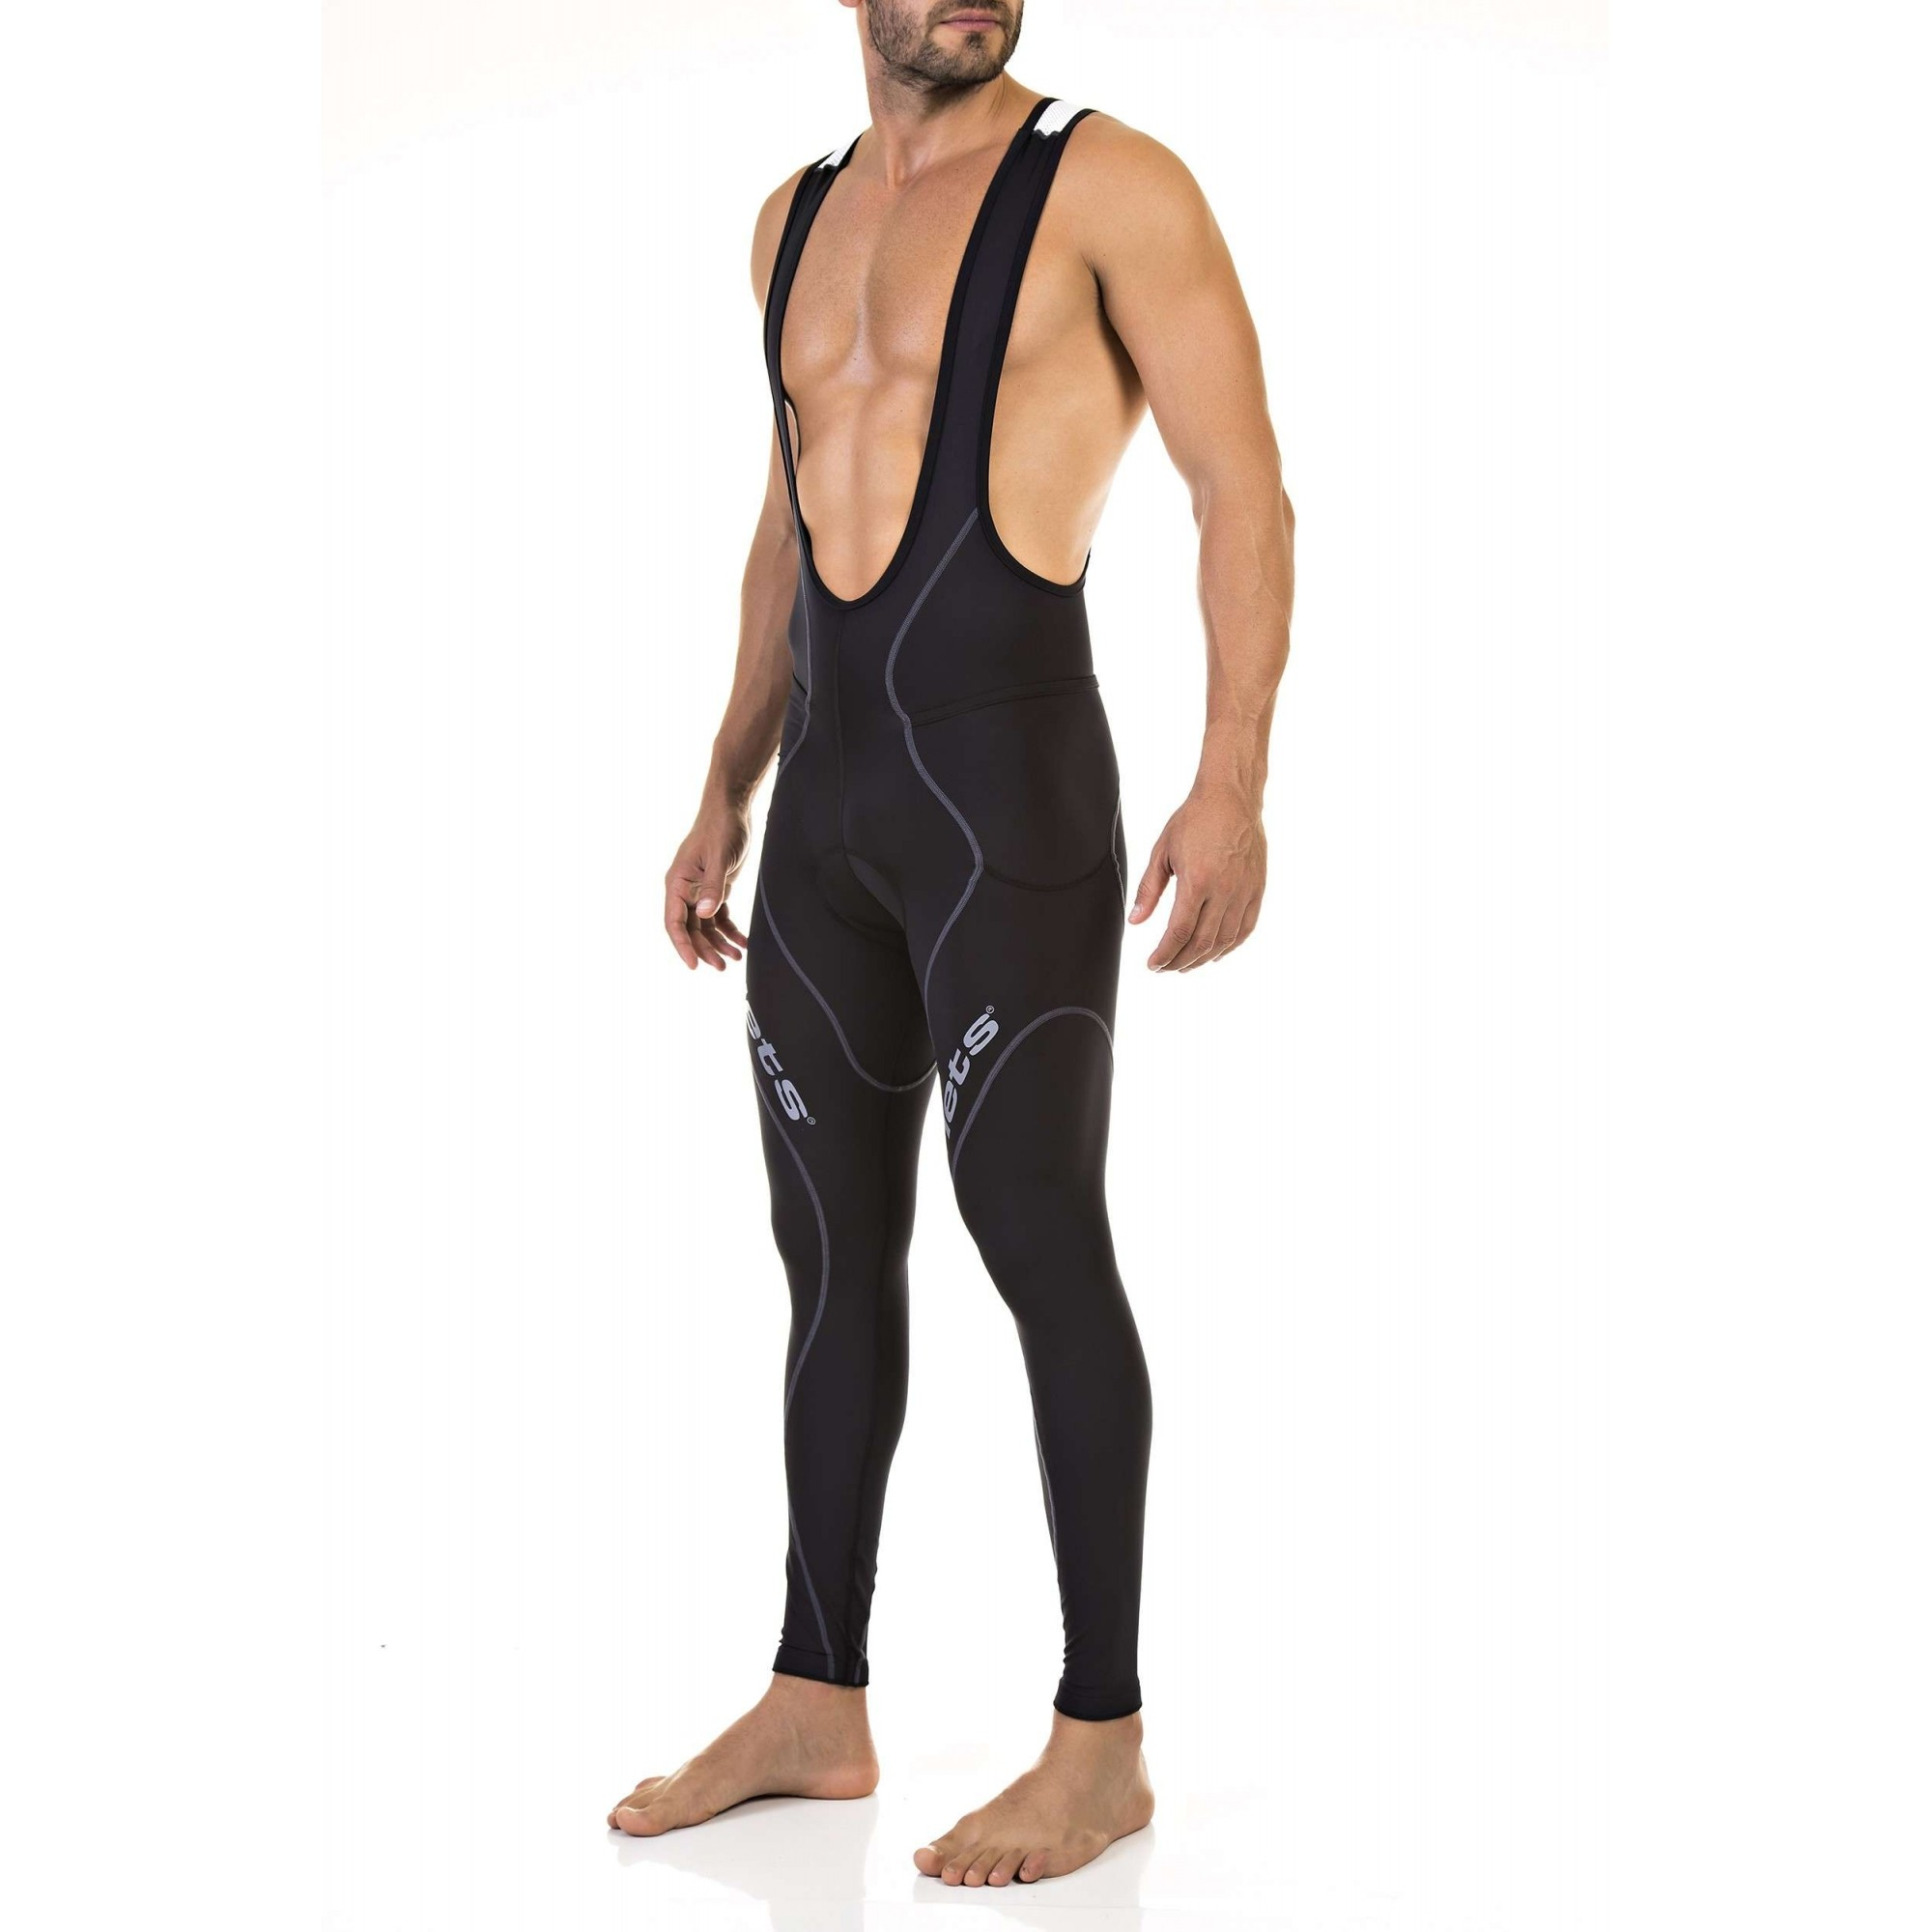 CALCA BRETELLE FLETS MASCULINO BASIC COMPRESSION PRETO